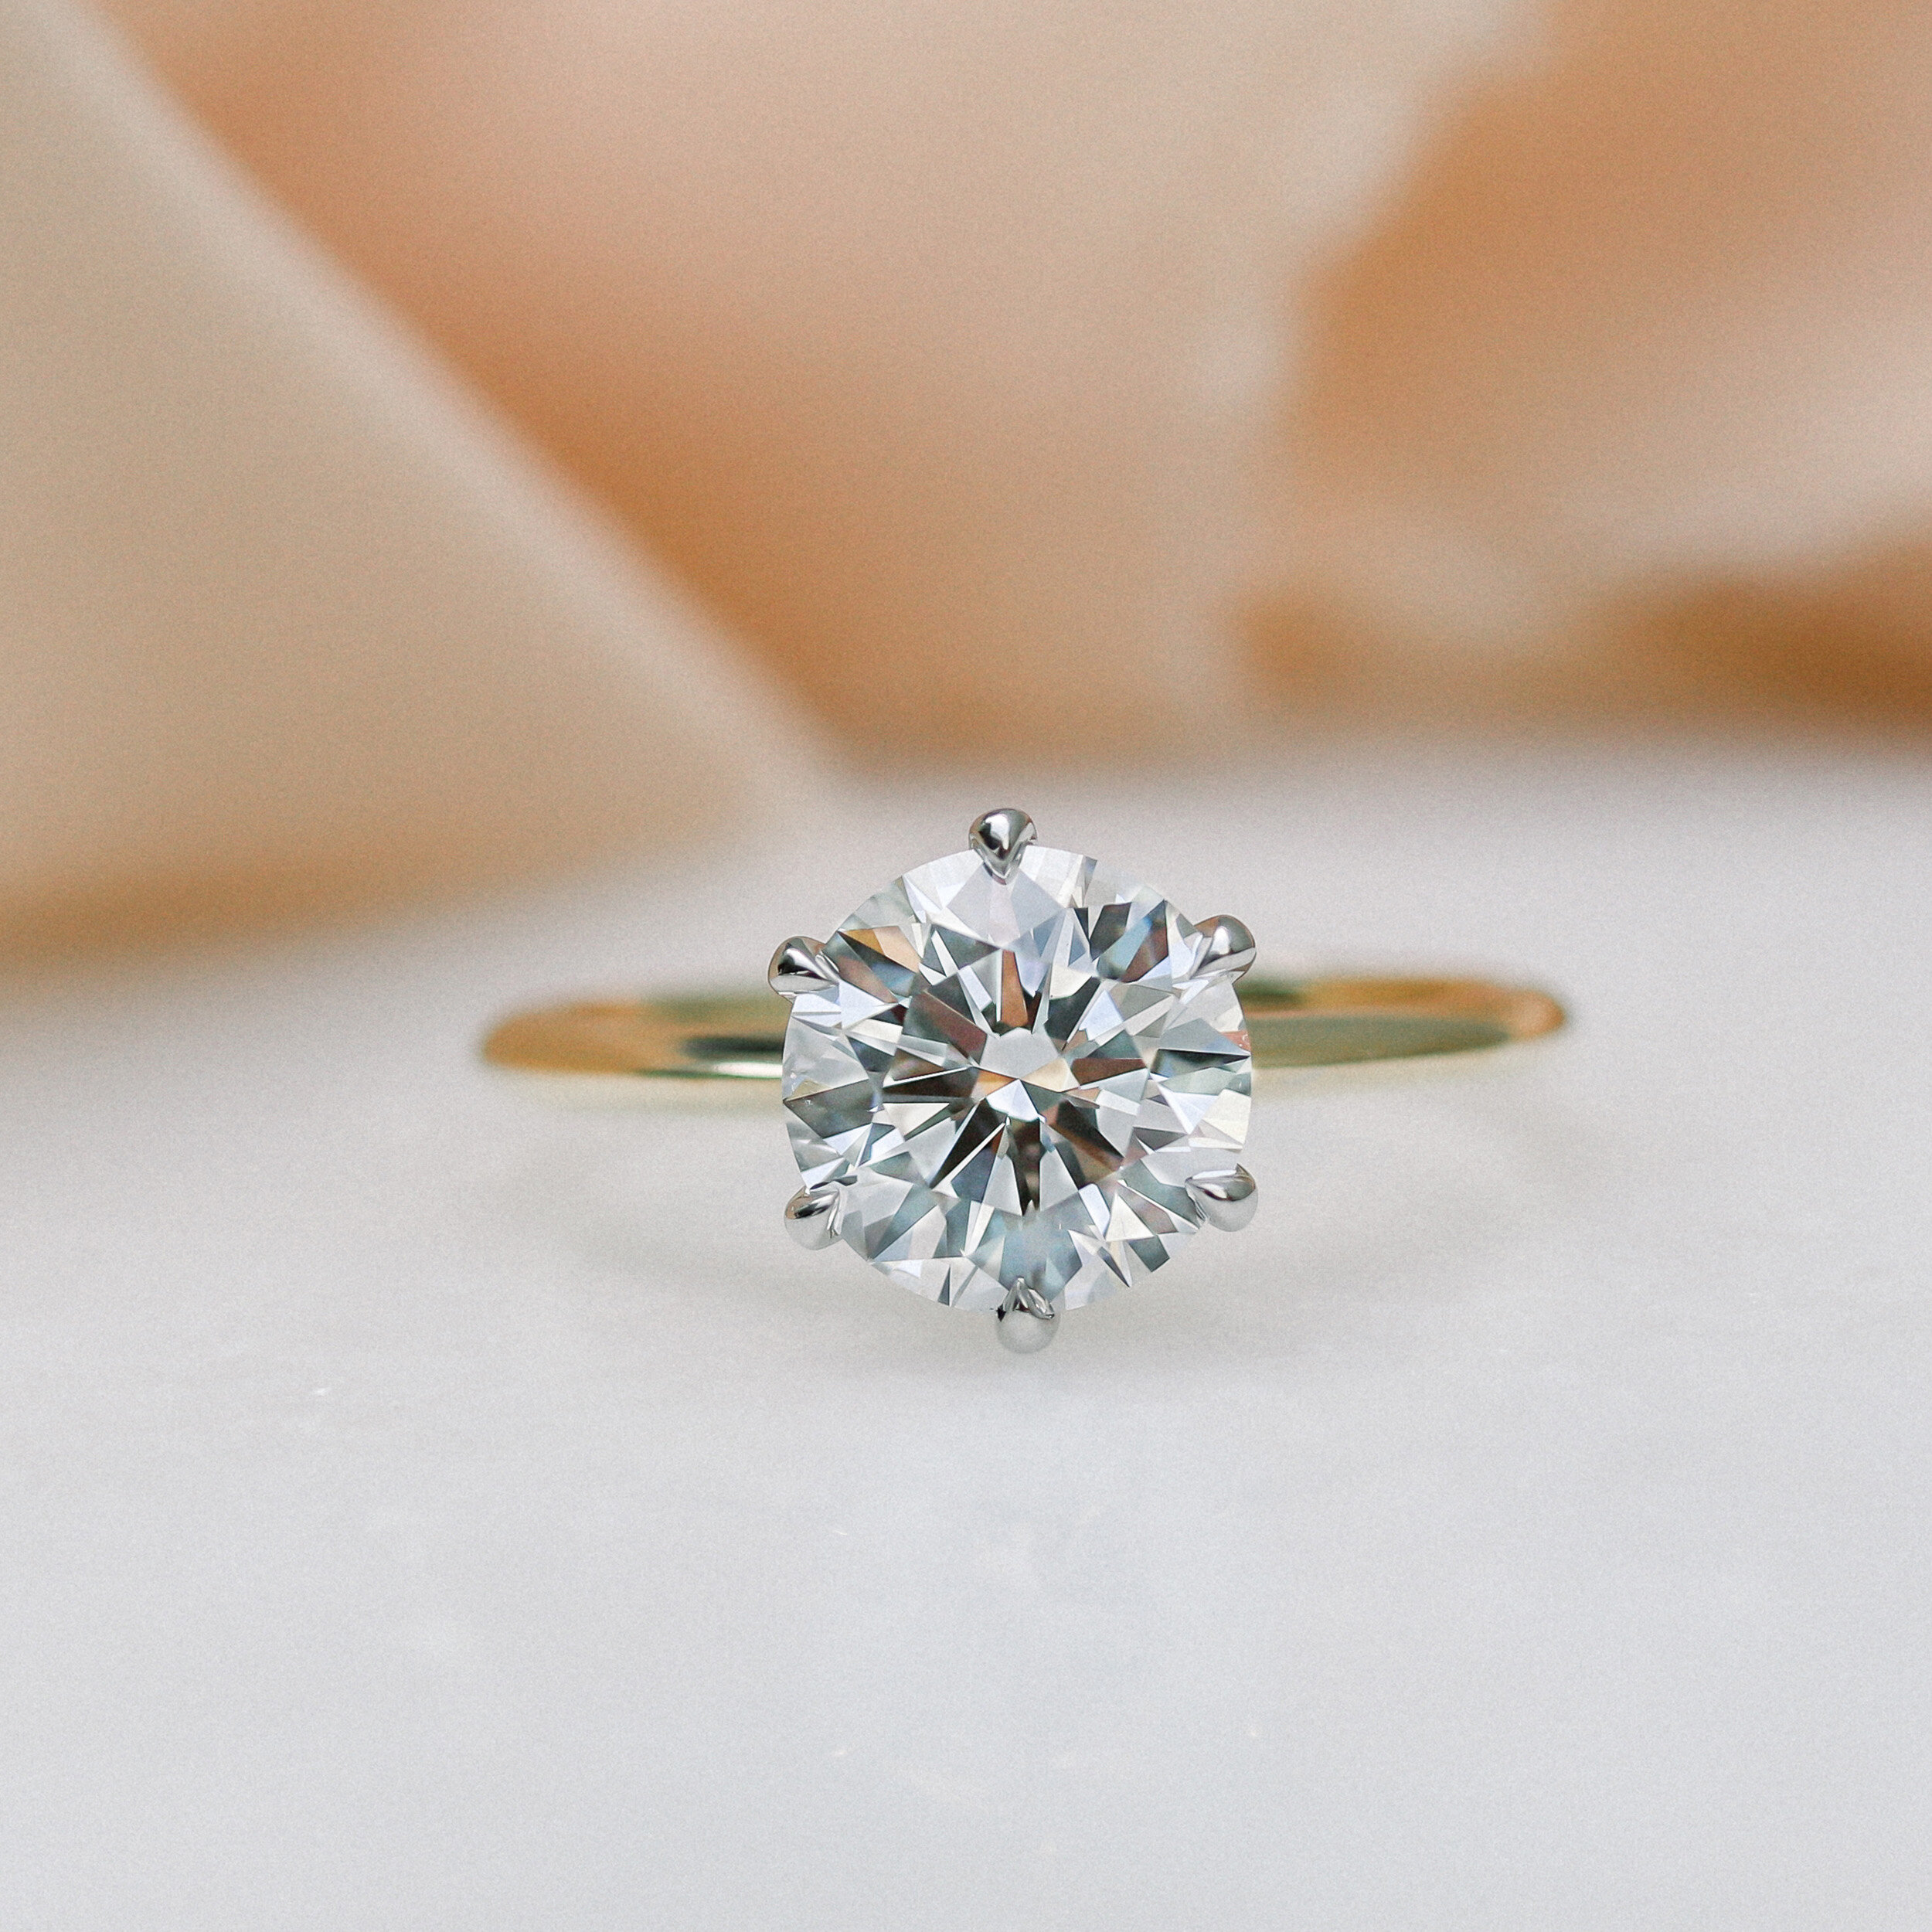 Laboratory Grown Diamond Engagement Rings And Wedding Bands